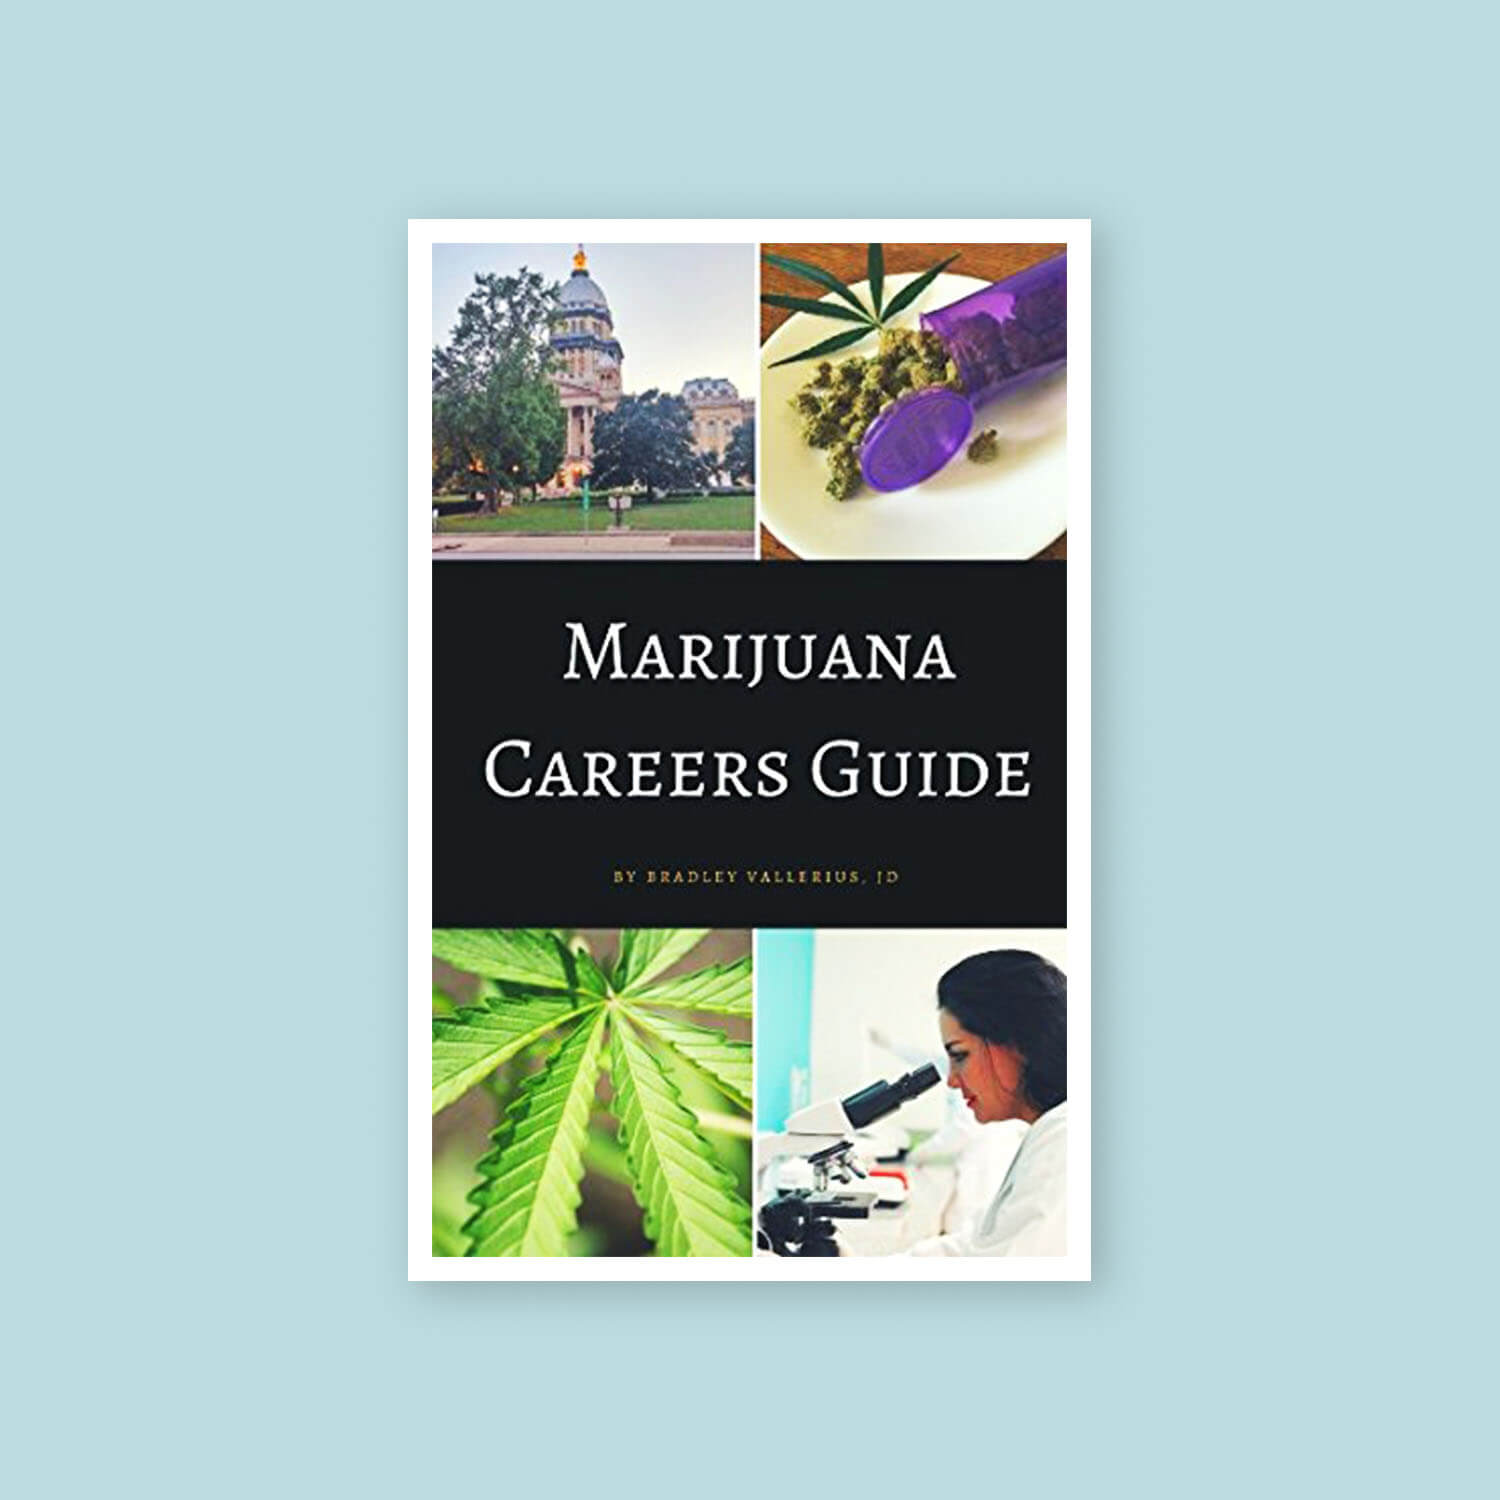 Marijuana Careers Guide